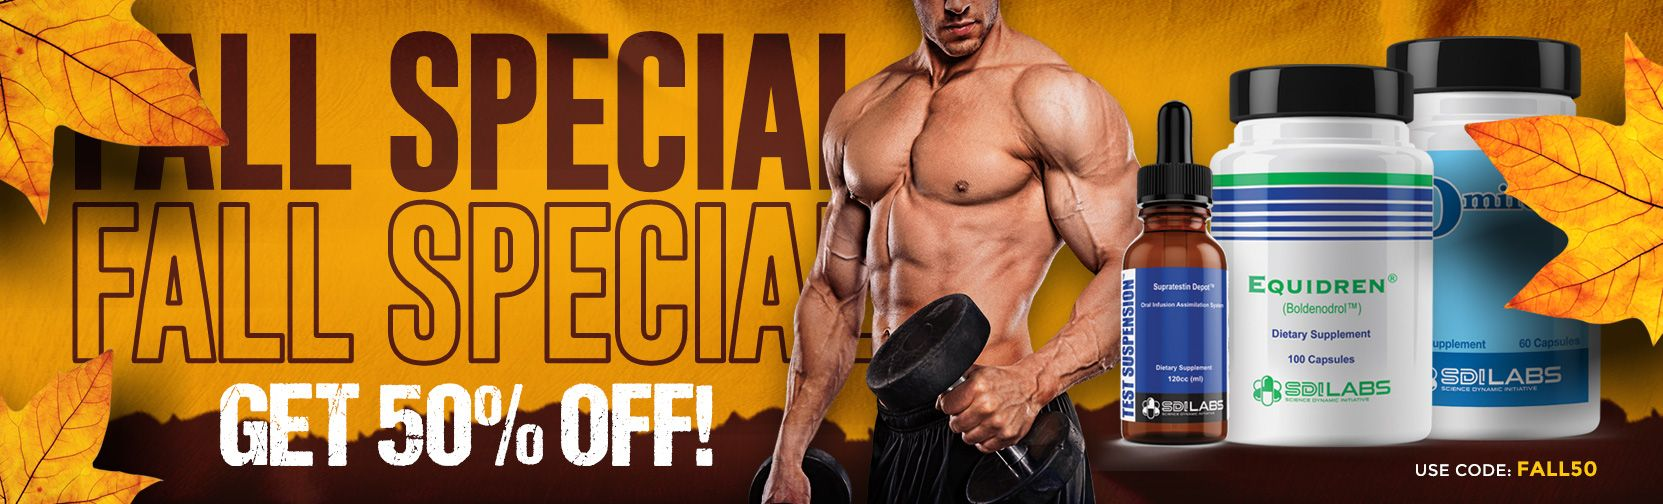 Legal Steroids Fall Special